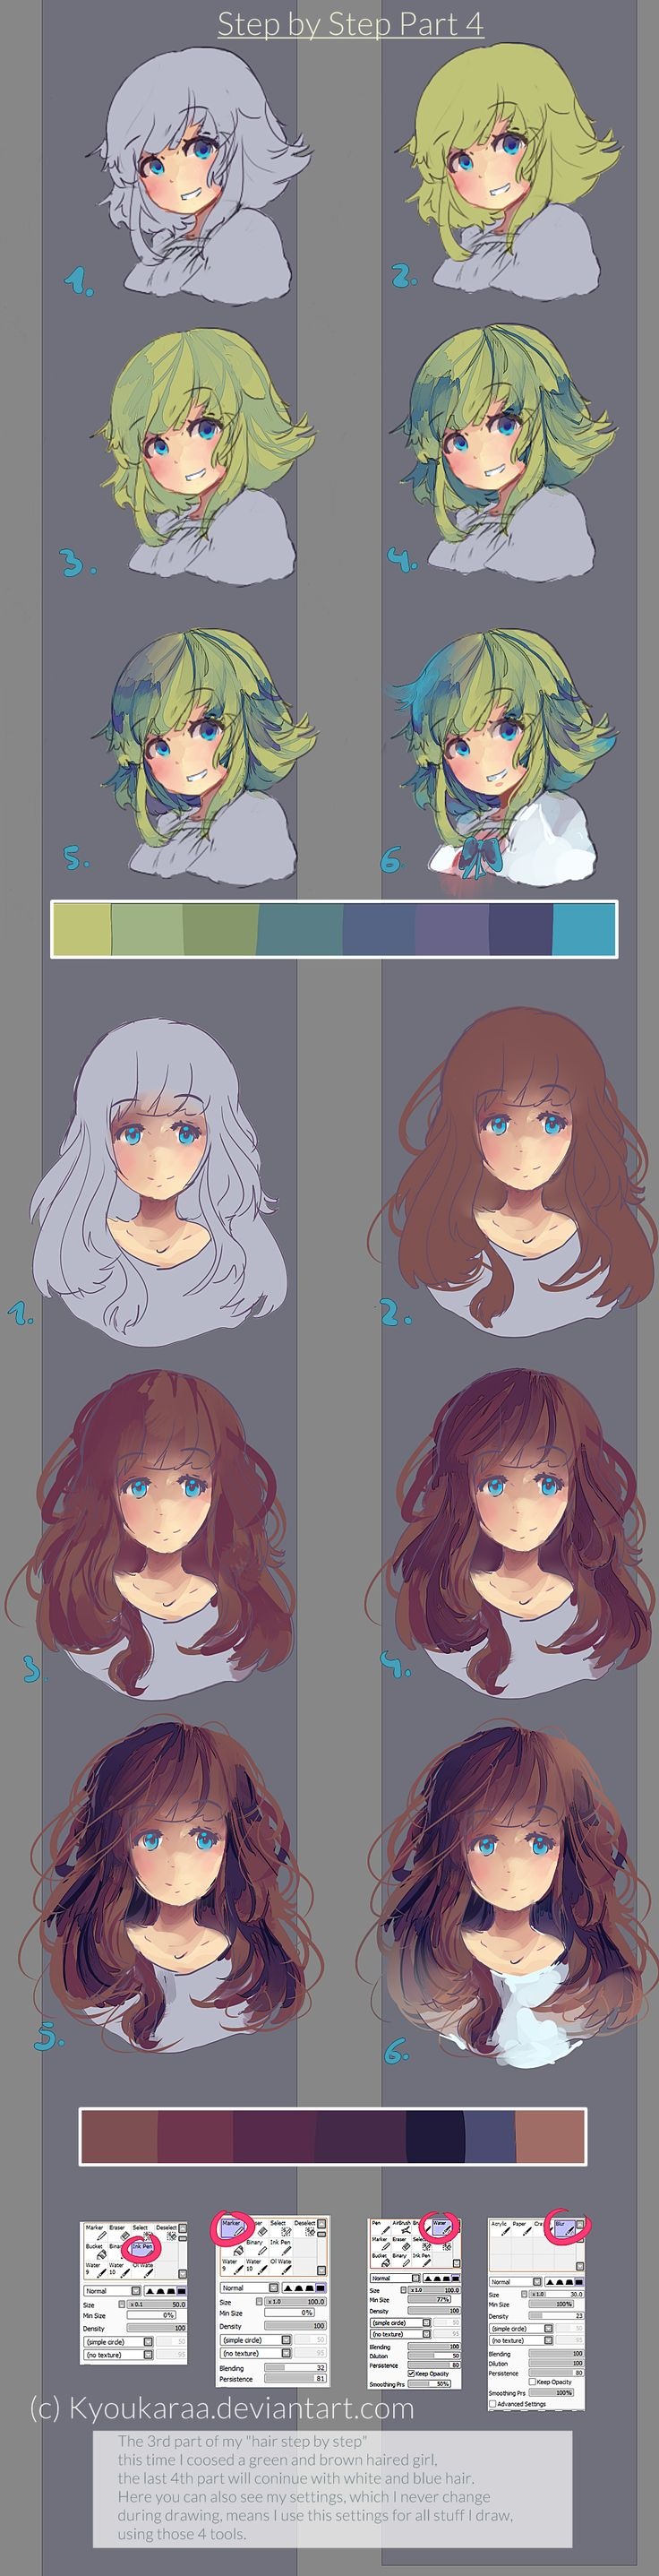 Step by Step Hair Part 3 by KyouKaraa on deviantART